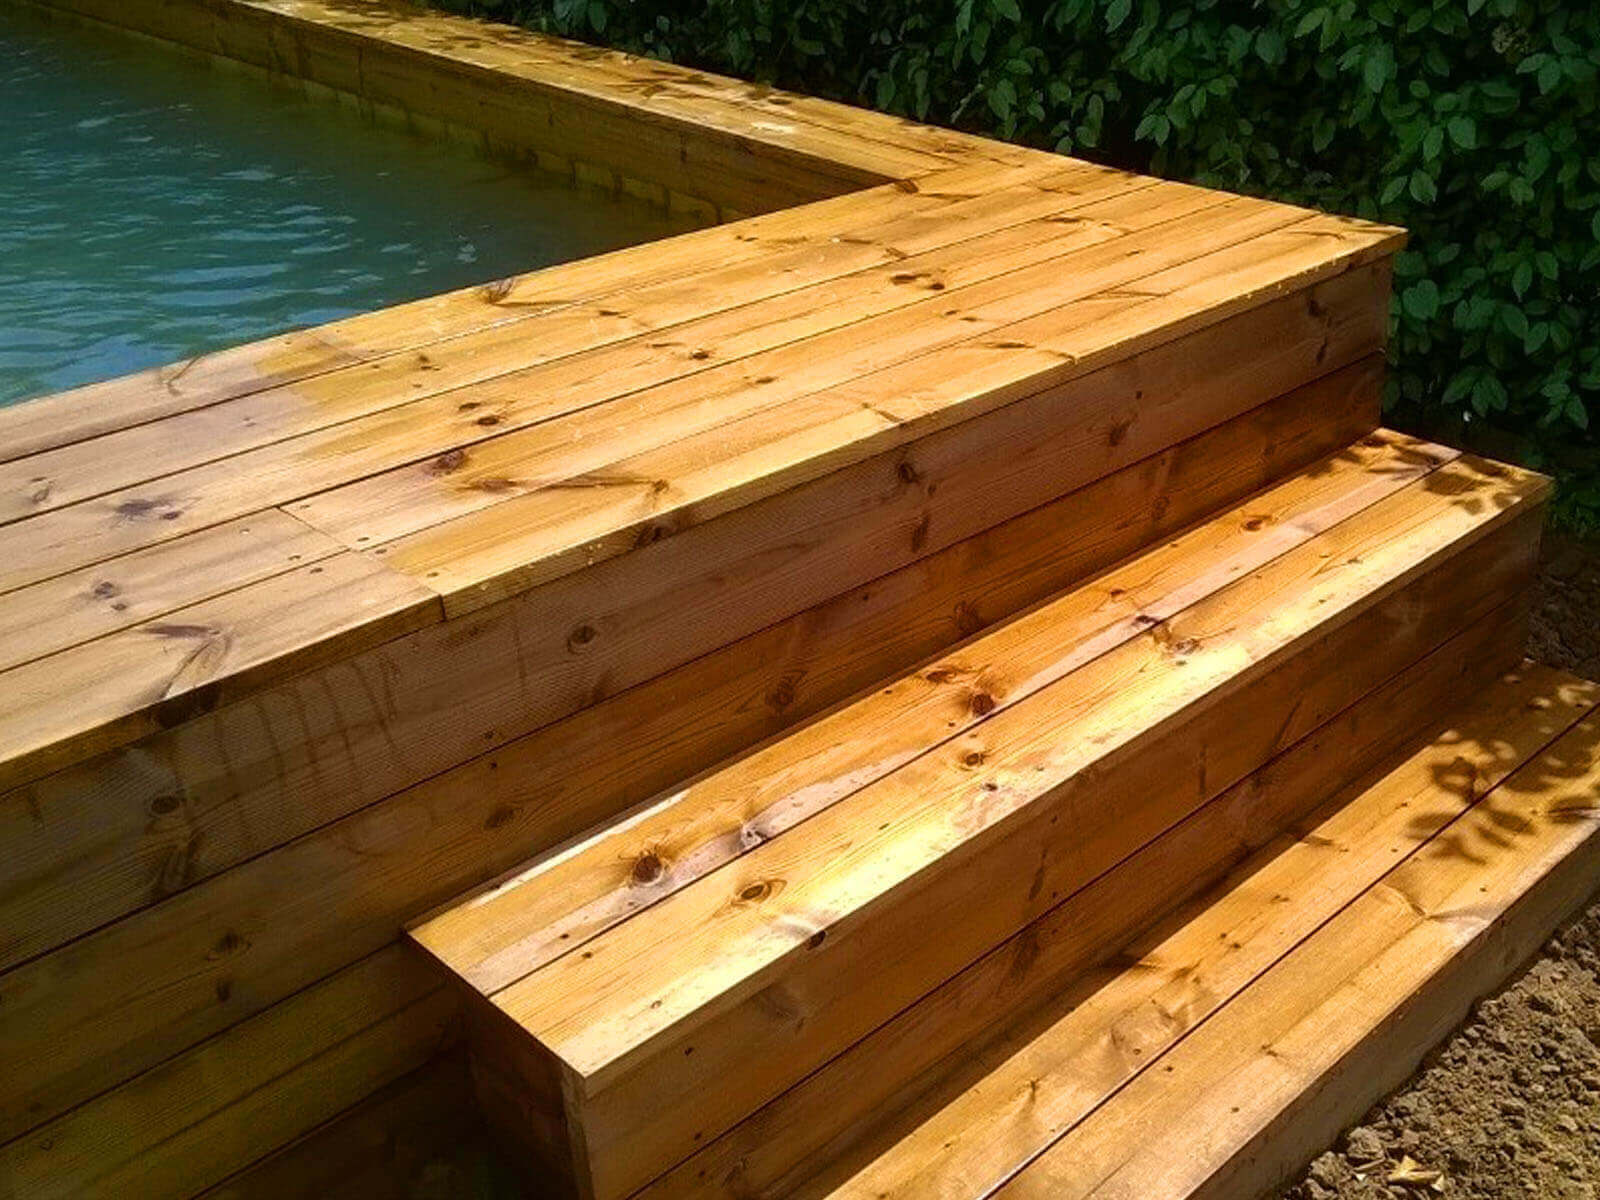 Photos de poses de piscines semi enterr es en bois par odyssea for Piscine hors sol 5x3 bois